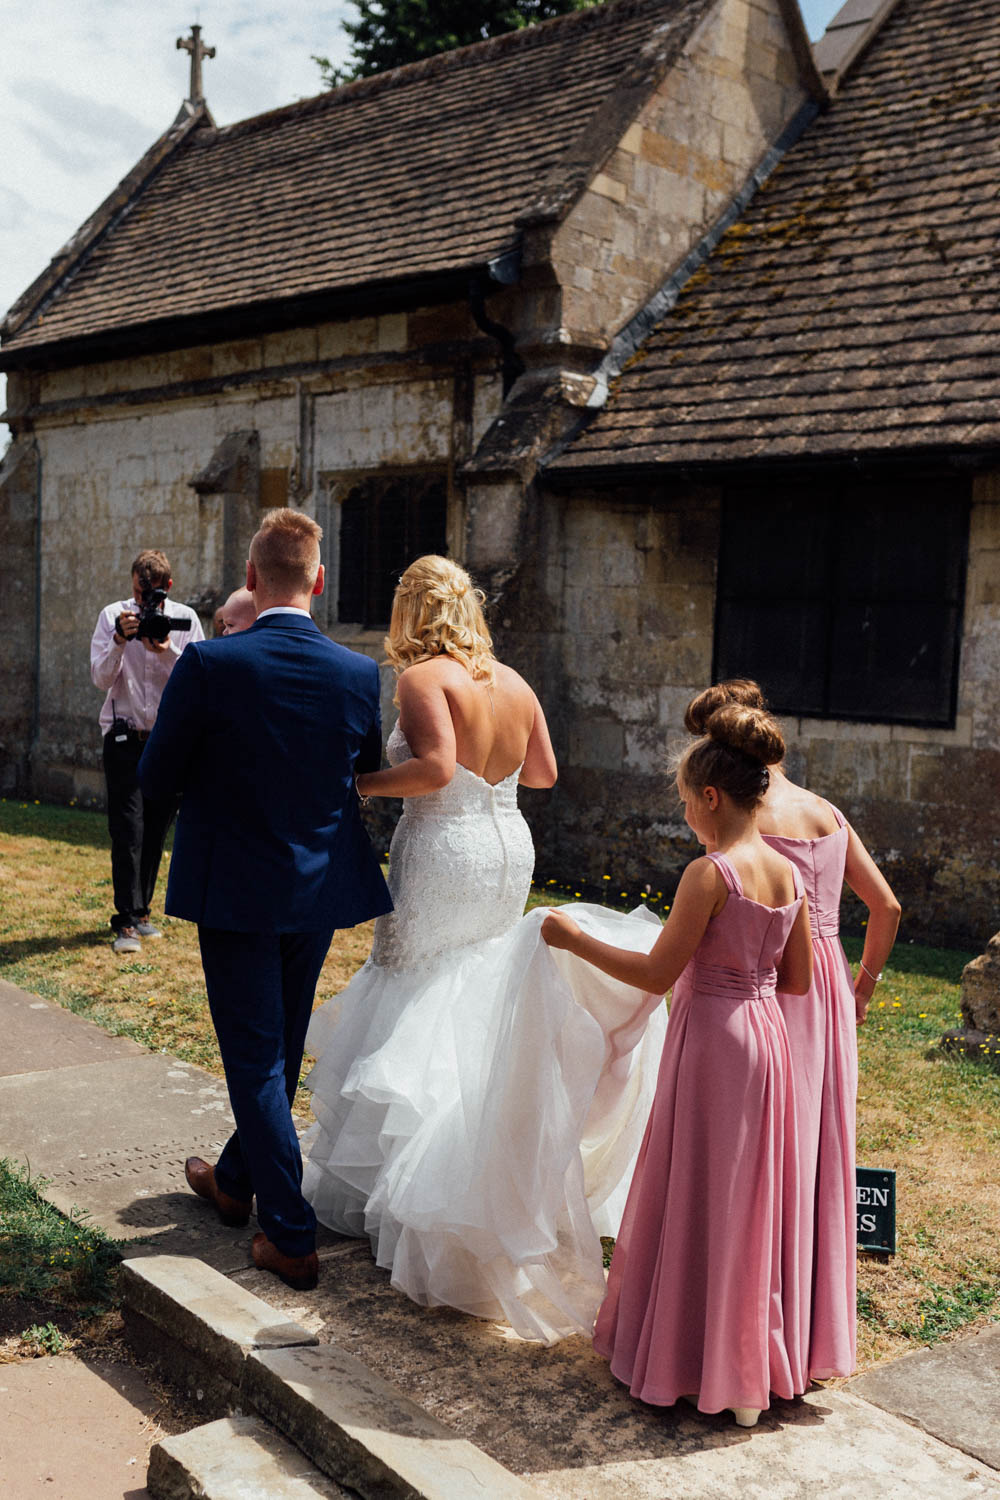 Special-Day-Photography-Manor-By-The-Lake-Cheltenham-Cheltenham-Manor-Wedding-flower-girl-helps-carry-the-train.jpg